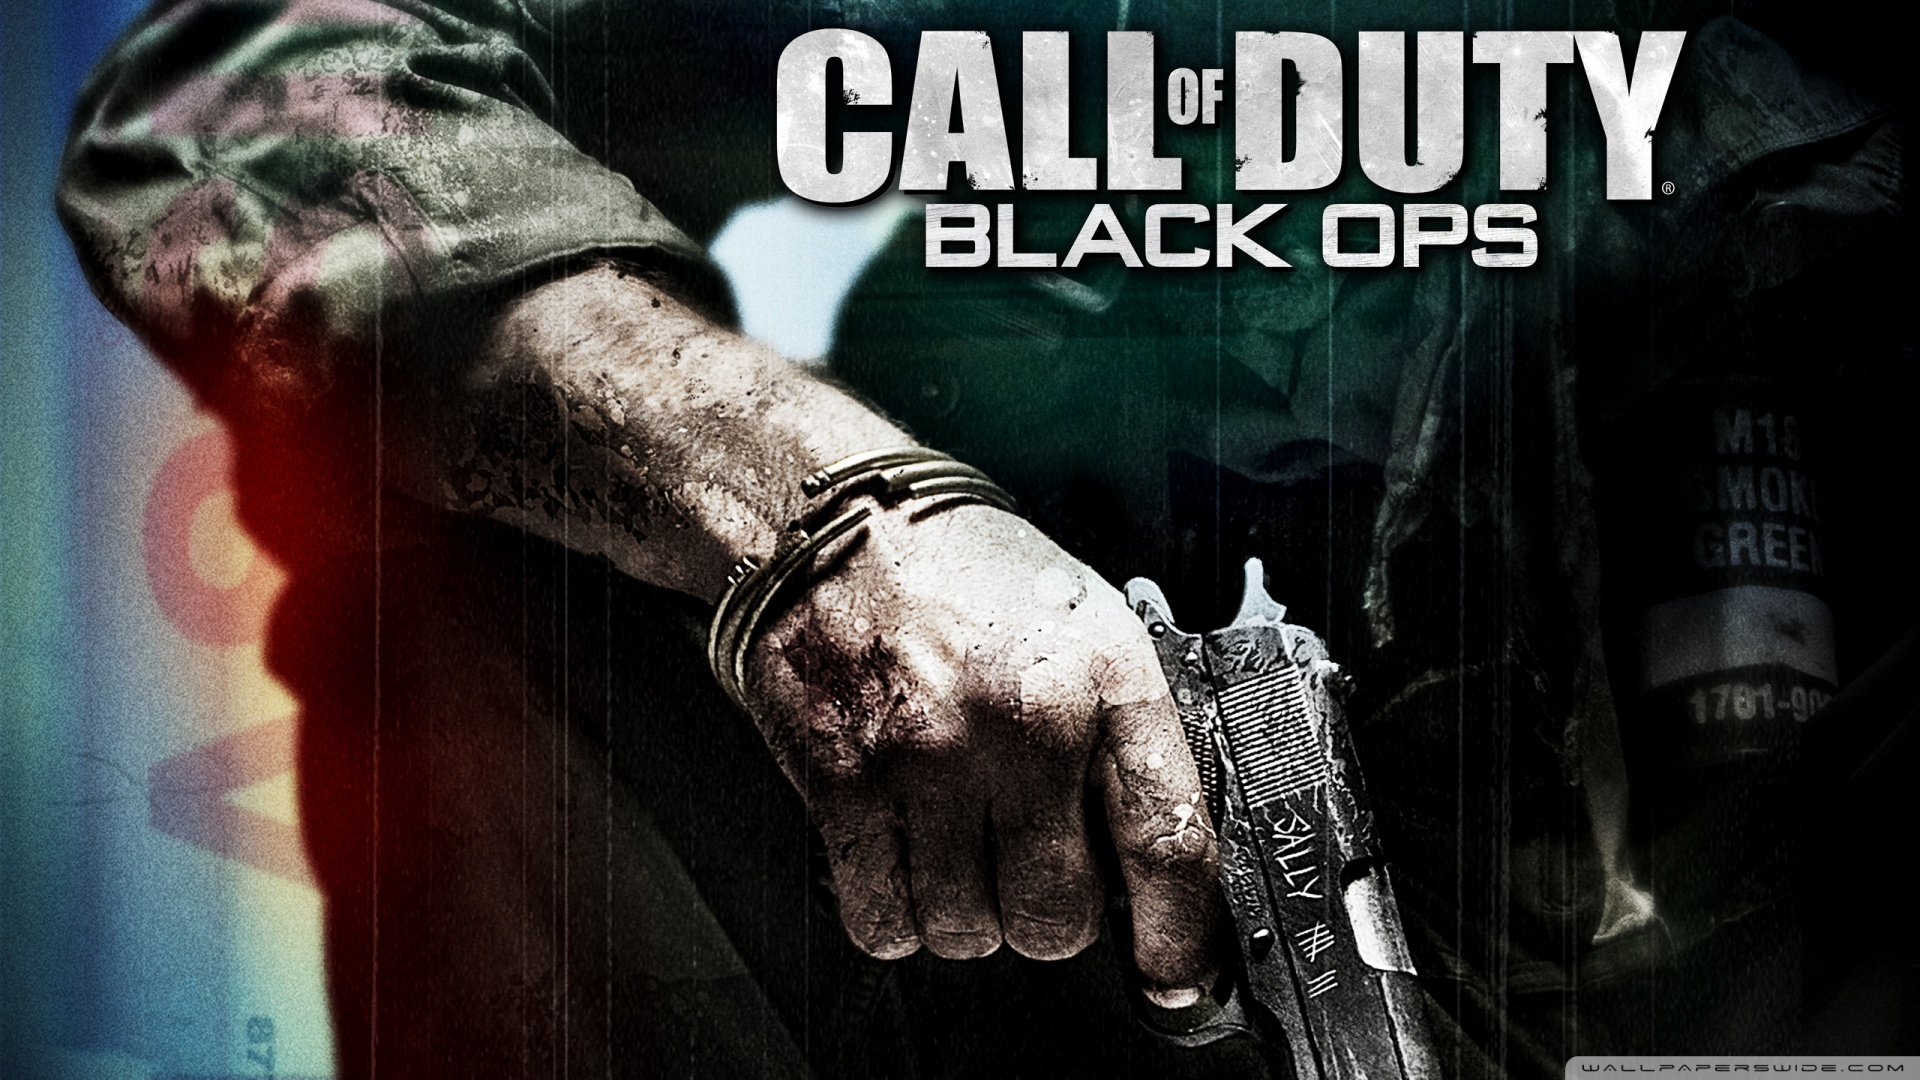 Free Download Call Of Duty Black Ops Hd Wallpapers 1920x1080 For